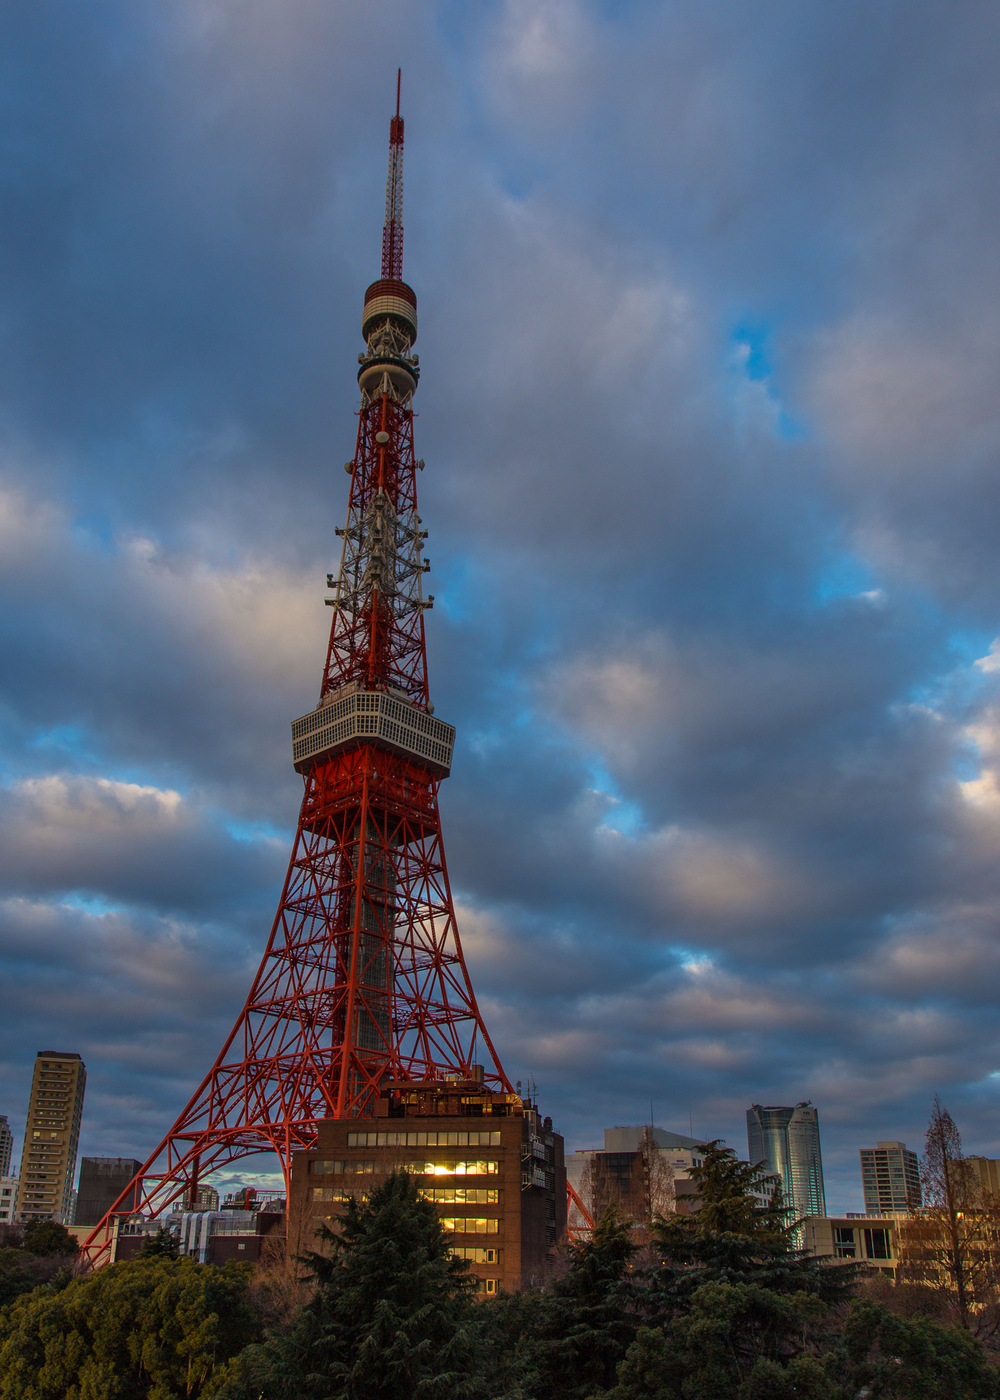 My hotel was right next to the Tokyo Tower, which made for some good photo opps. The light this day was really nice.